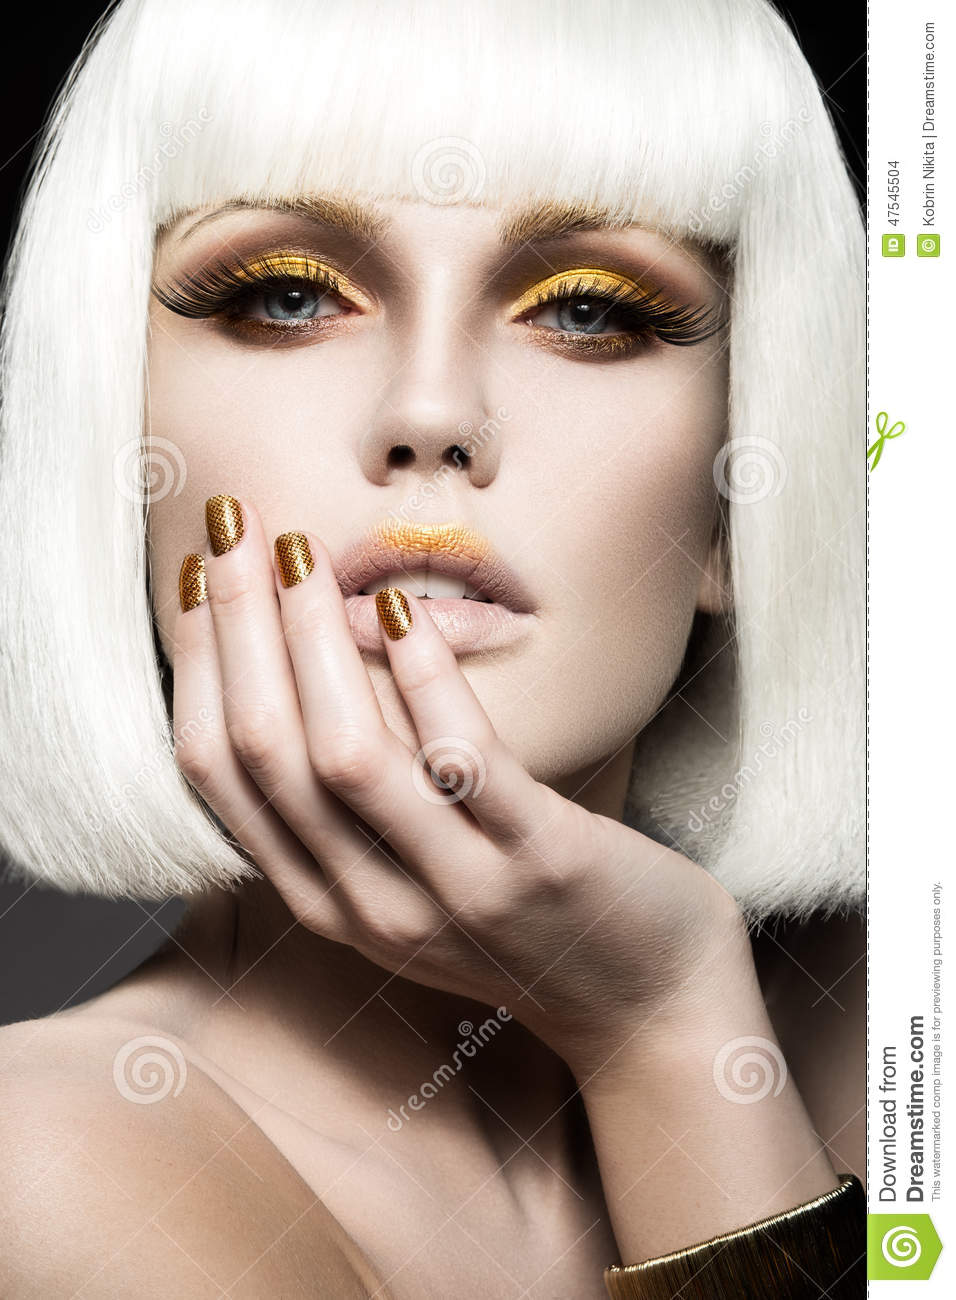 Girl Makeup: Beautiful Girl In A White Wig, With Gold Makeup And Nails